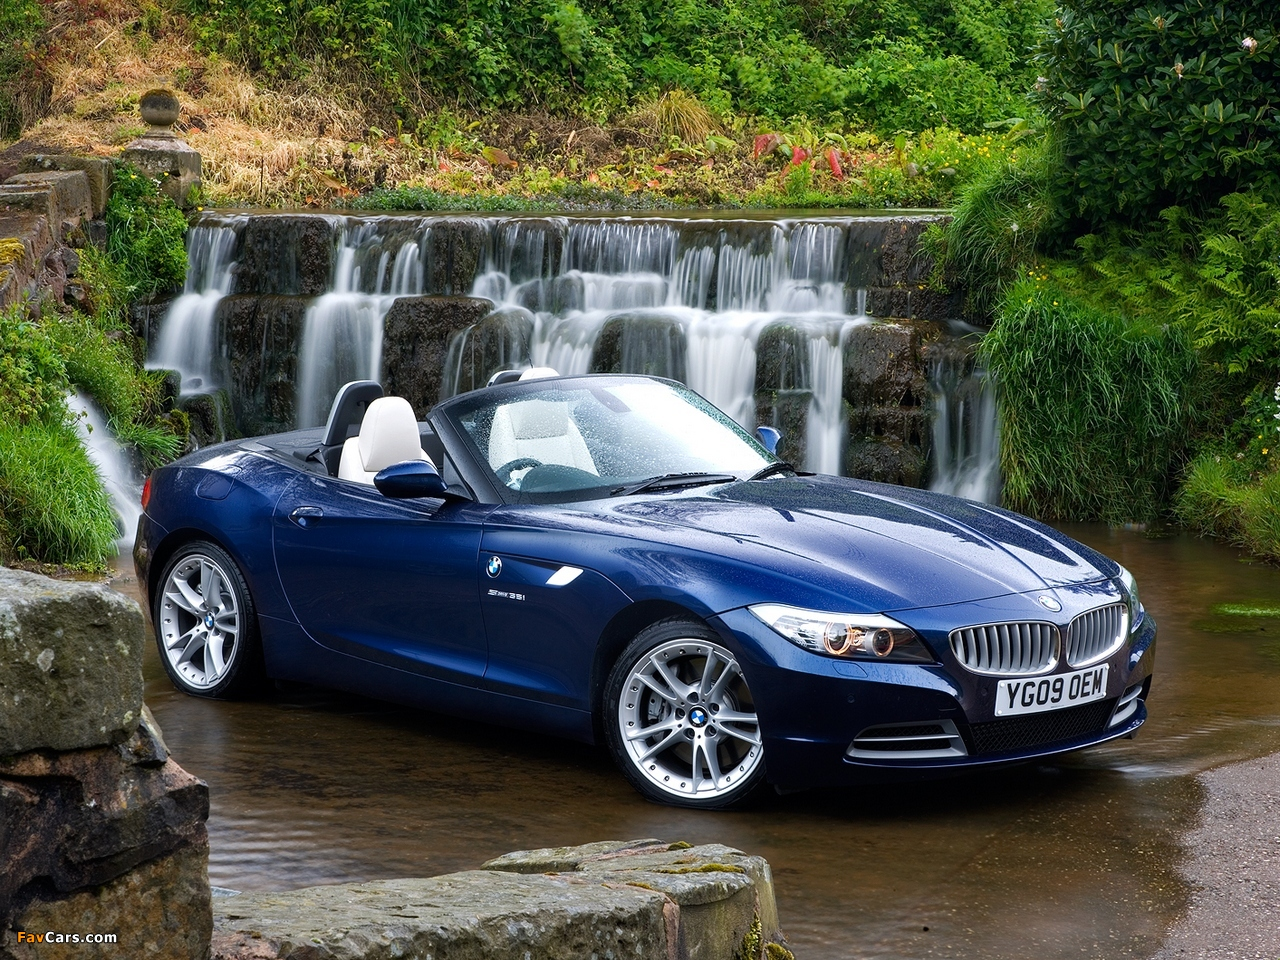 Bmw Z4 Sdrive35i Roadster Uk Spec E89 2009 12 Photos